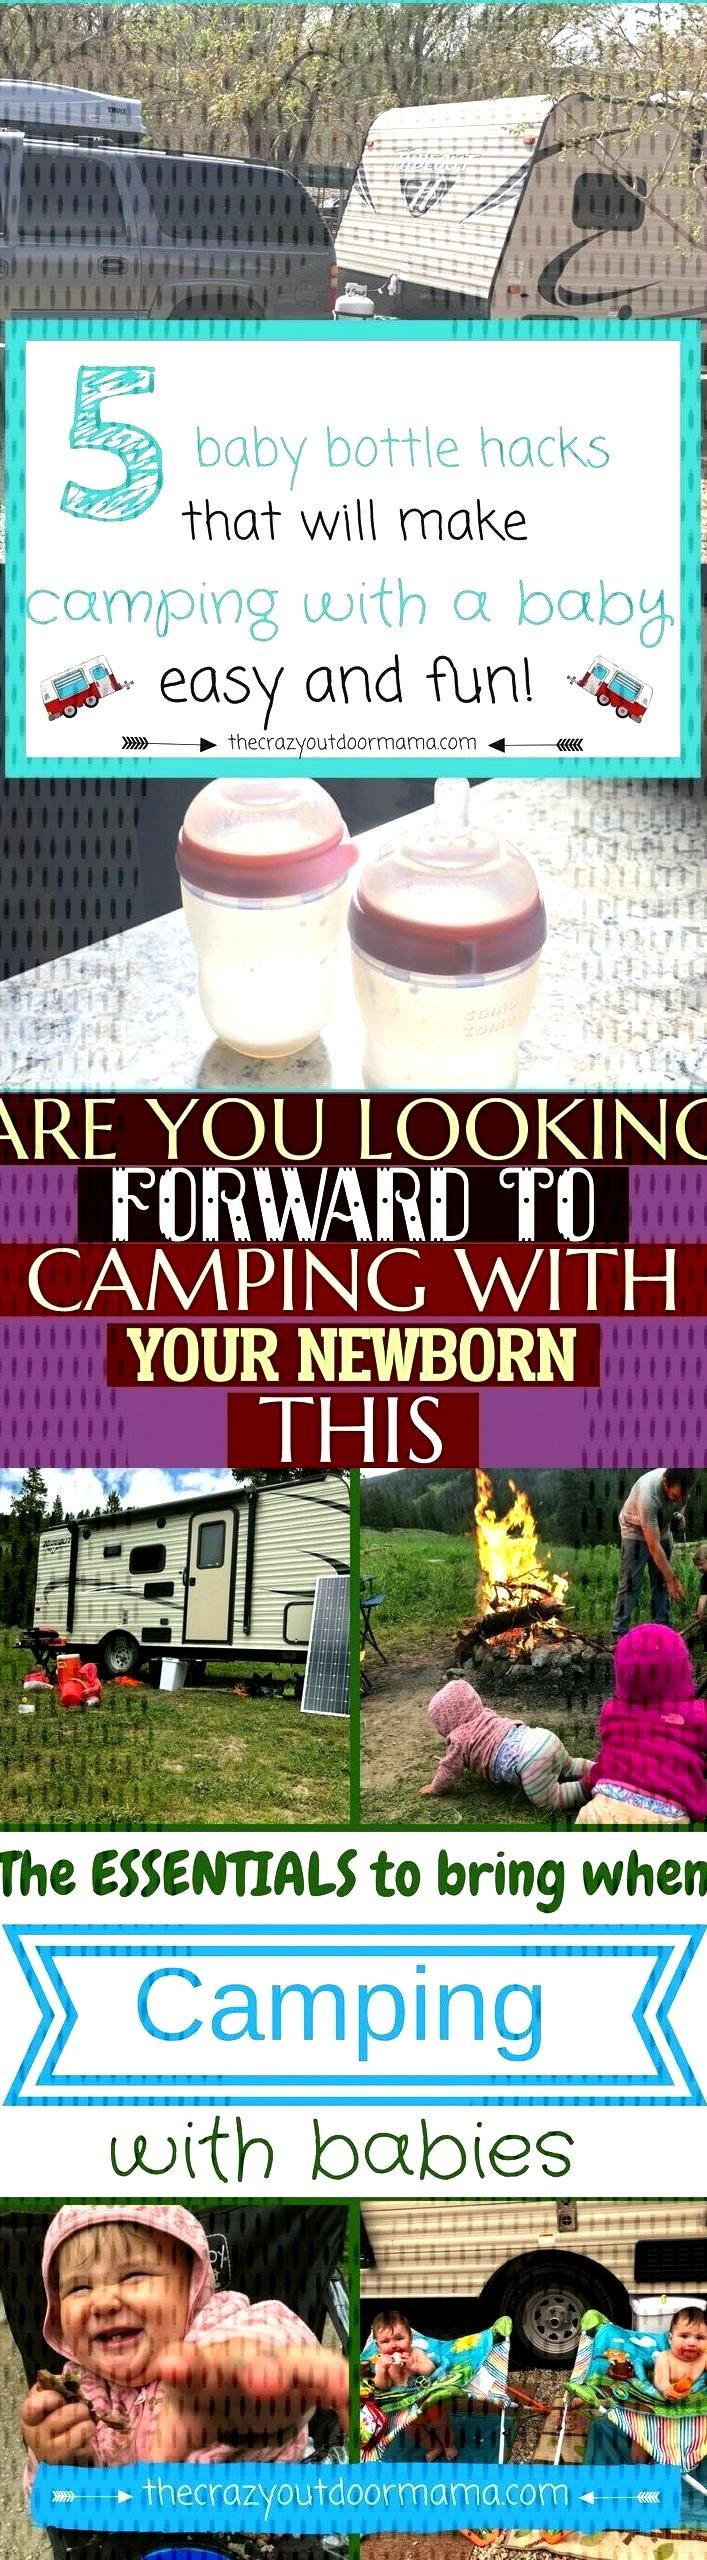 Are You Looking Forward To Camping With Your Newborn This ~ freust du dich auf camping mit deinem n